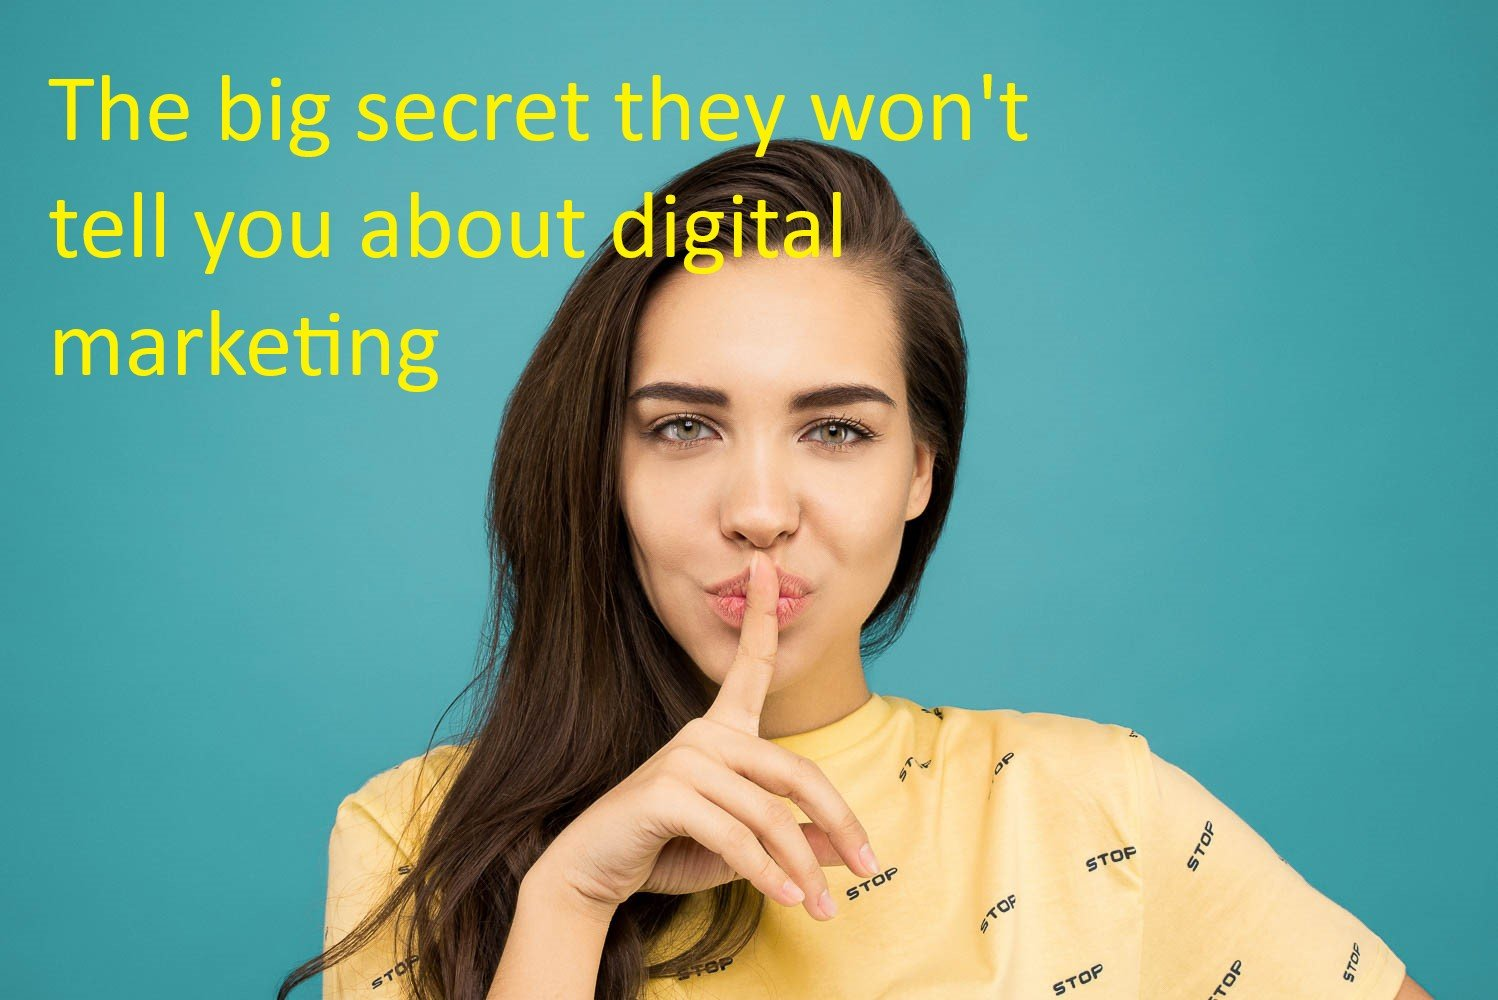 The big digital marketing secret